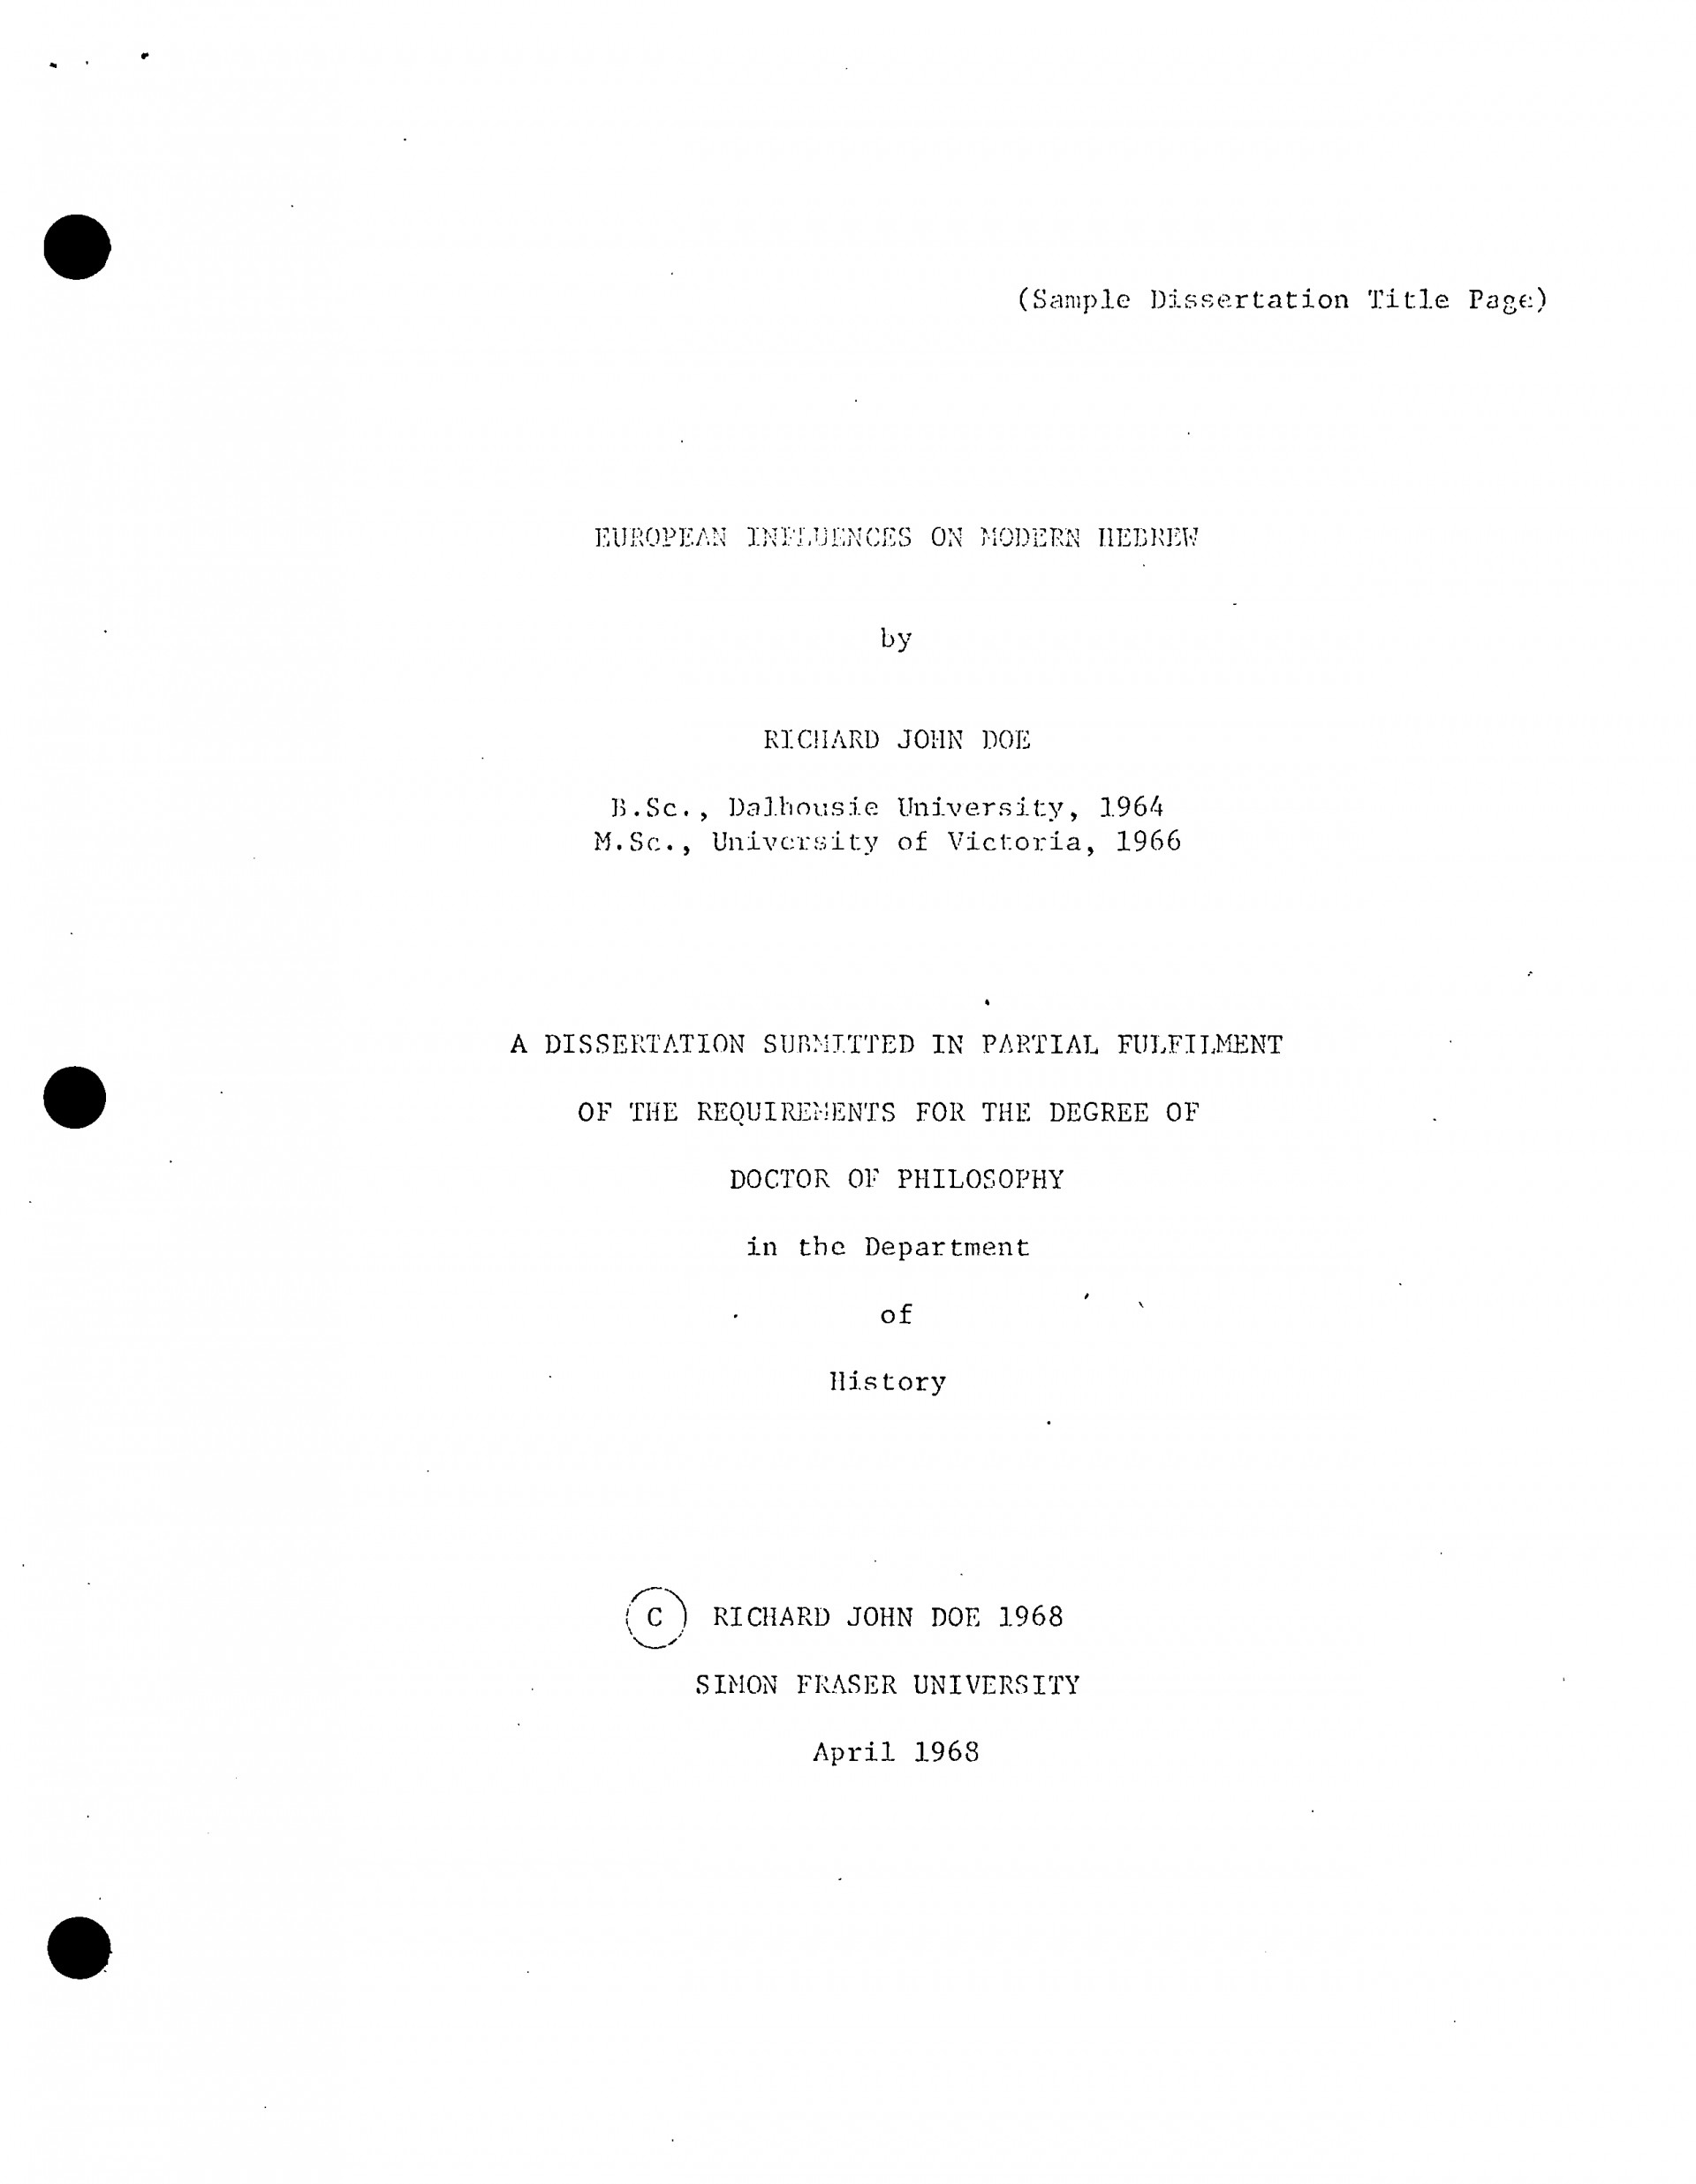 025 Research Paper Front Page Format Striking Title Chicago For High School Mla Style 1920